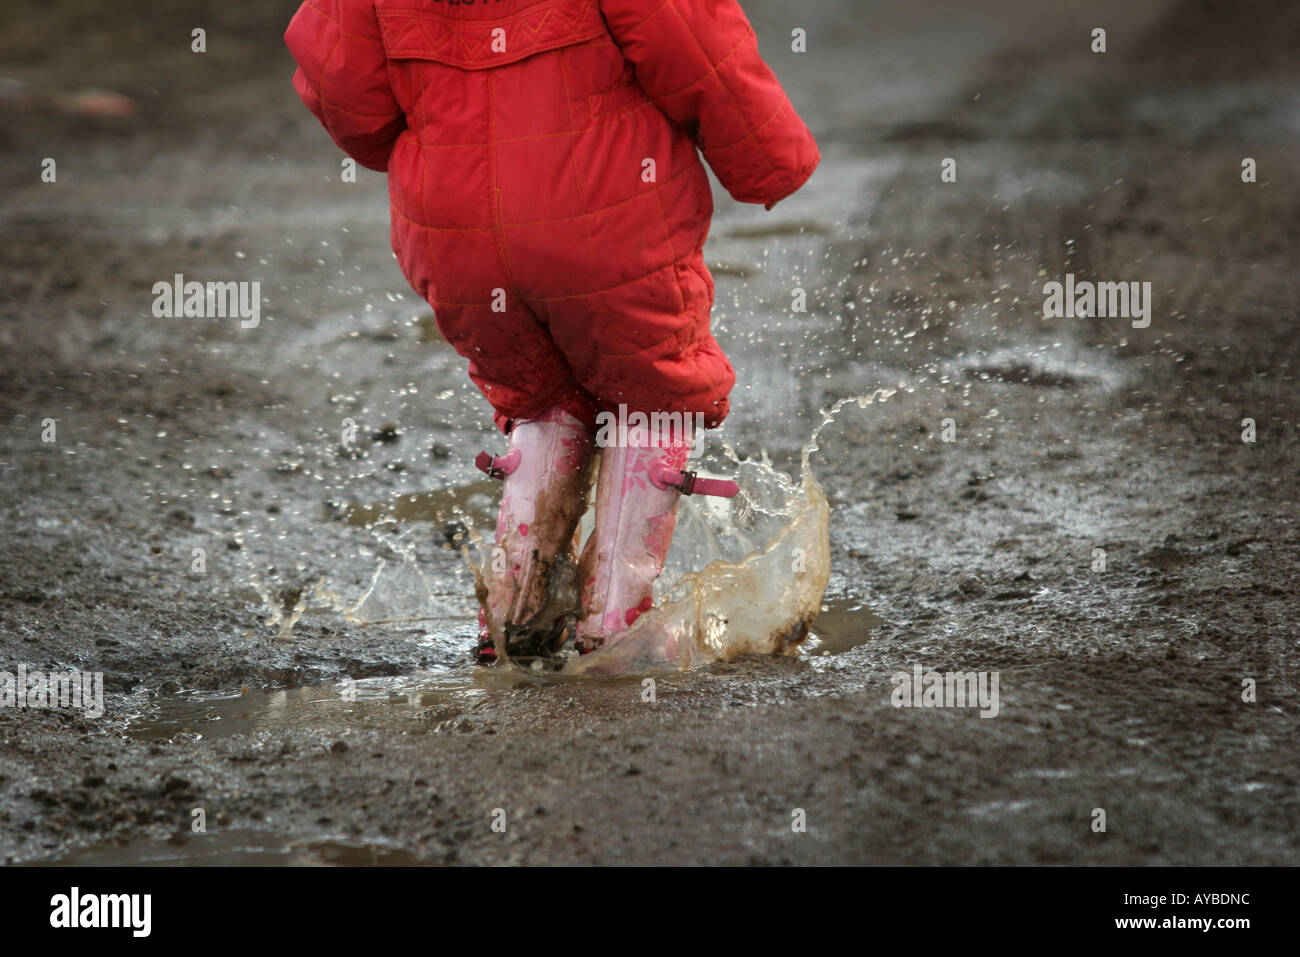 A Child In Red Suit And Pink Wellies Splashes In A Puddle